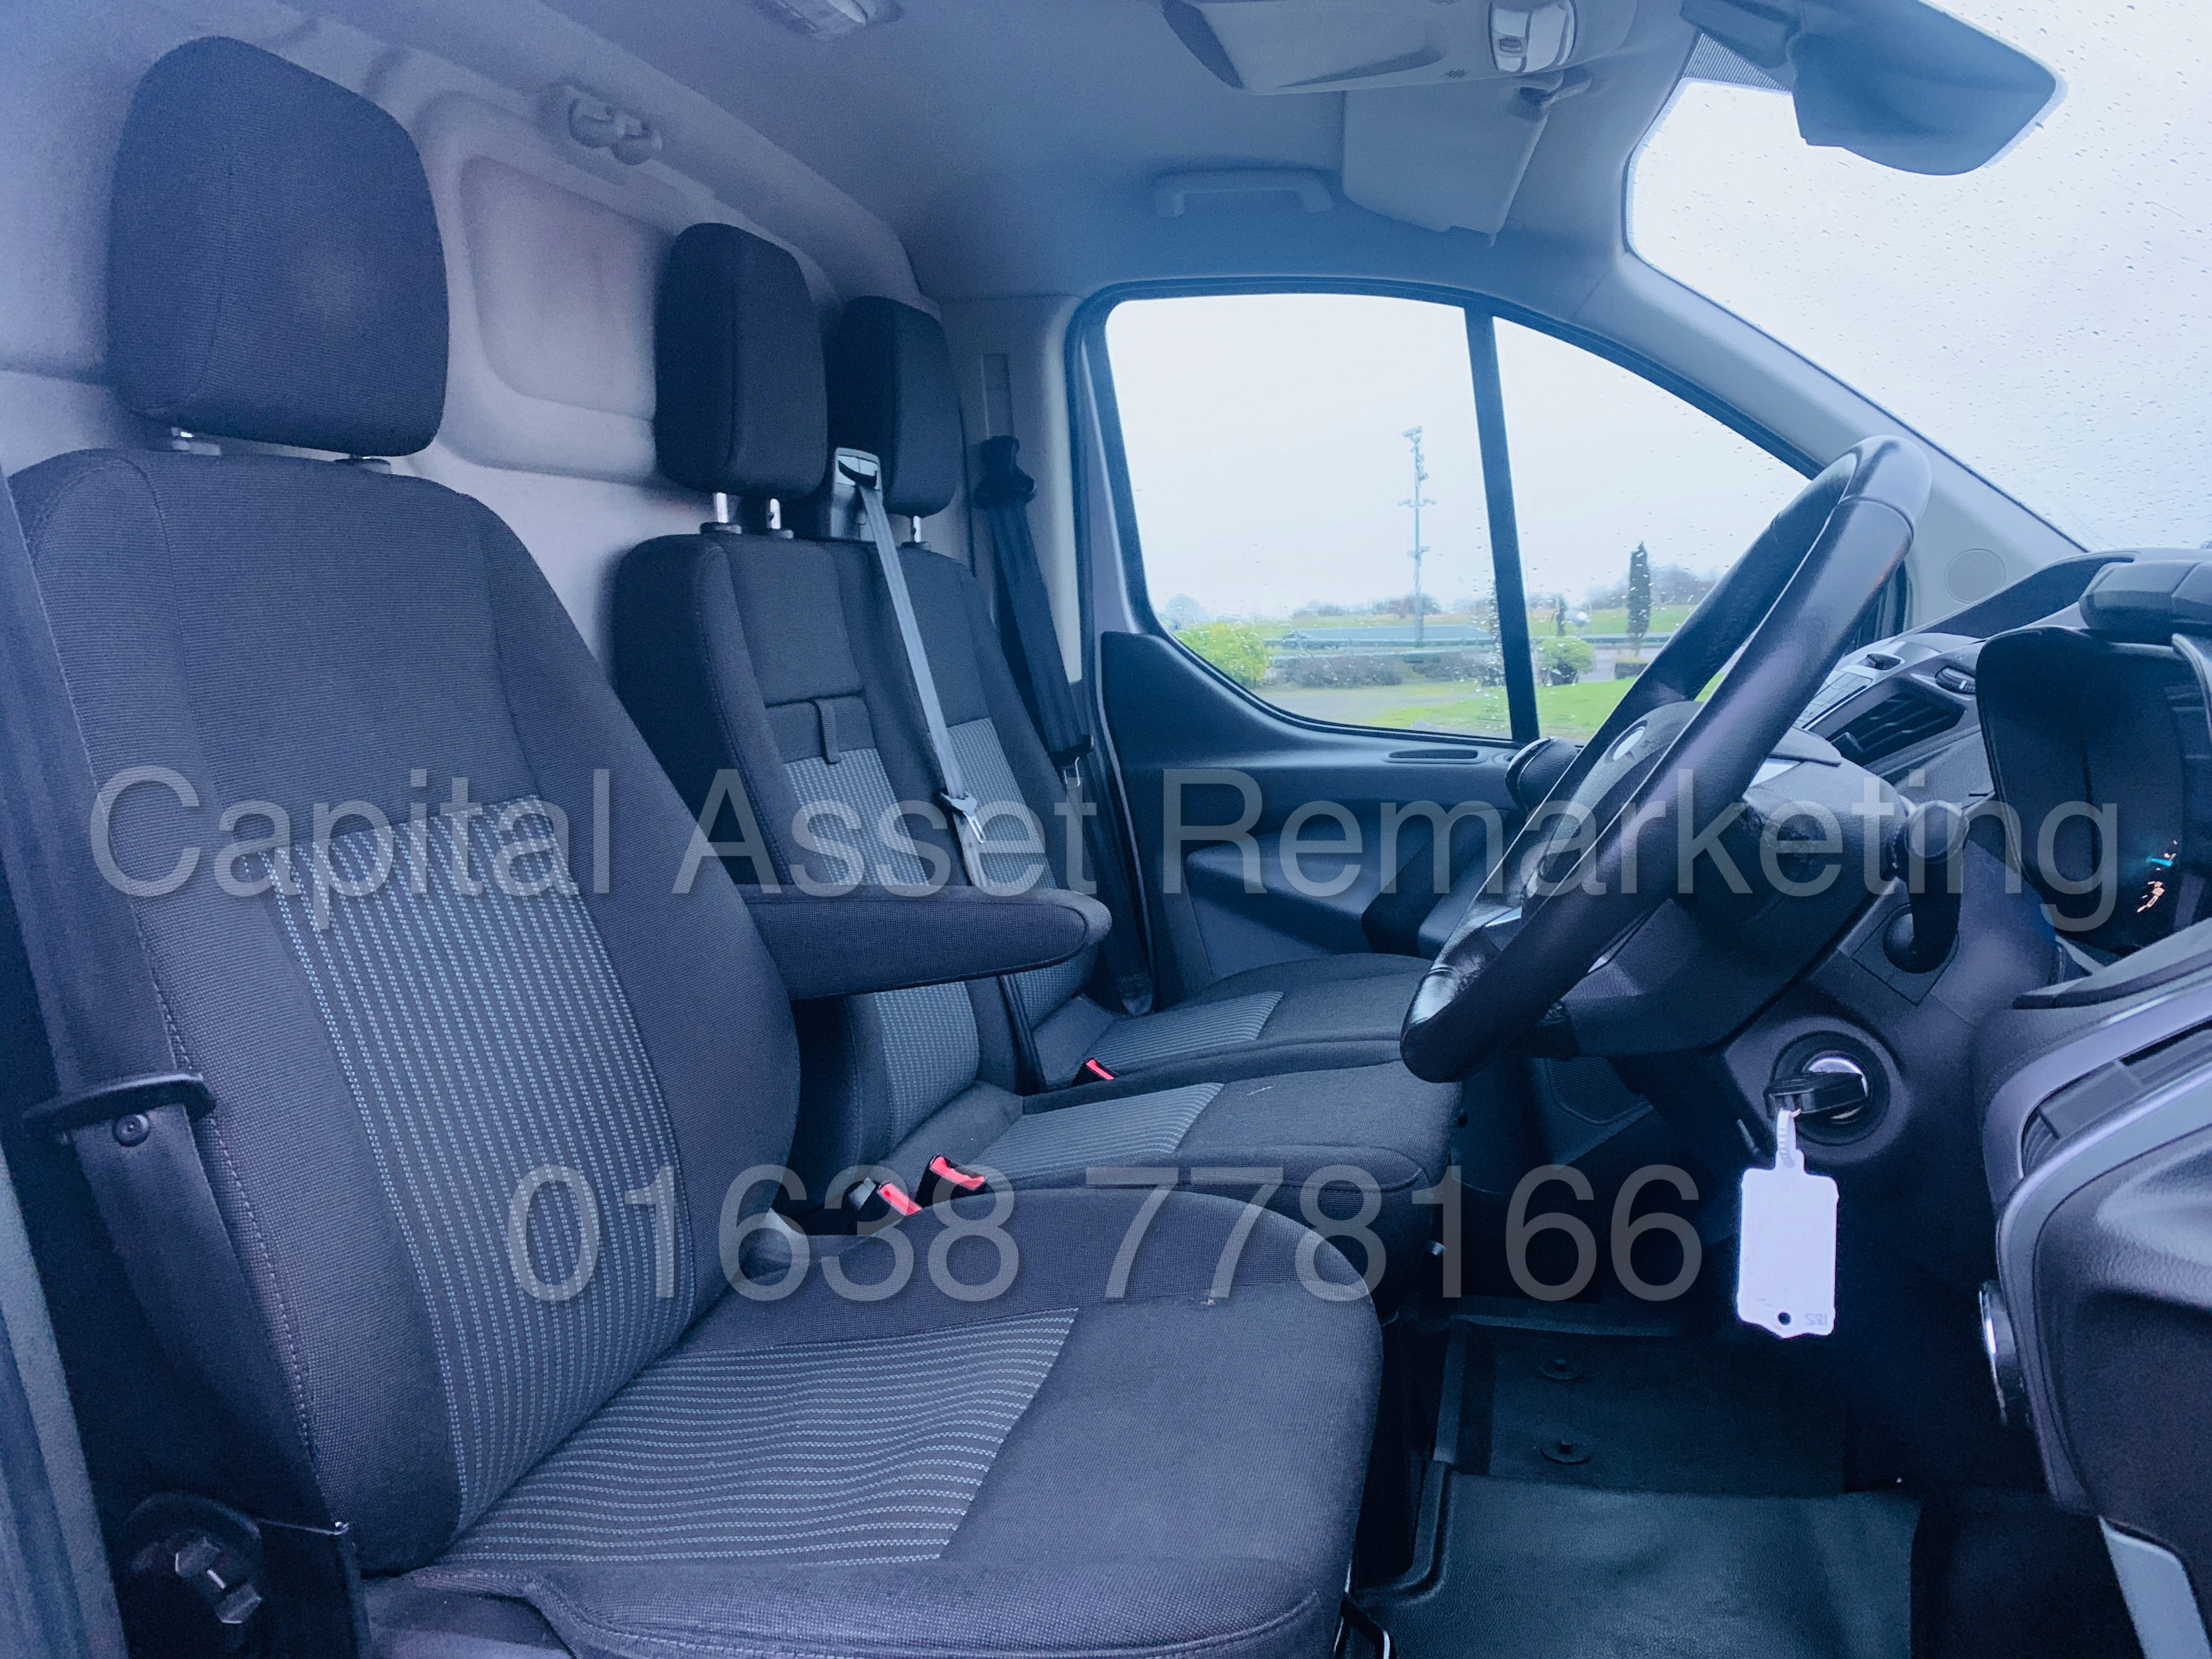 (On Sale) FORD TRANSIT *TREND* 290 SWB (2017 - EURO 6 / AD-BLUE) '2.0 TDCI - 130 BHP - 6 SPEED' - Image 26 of 41